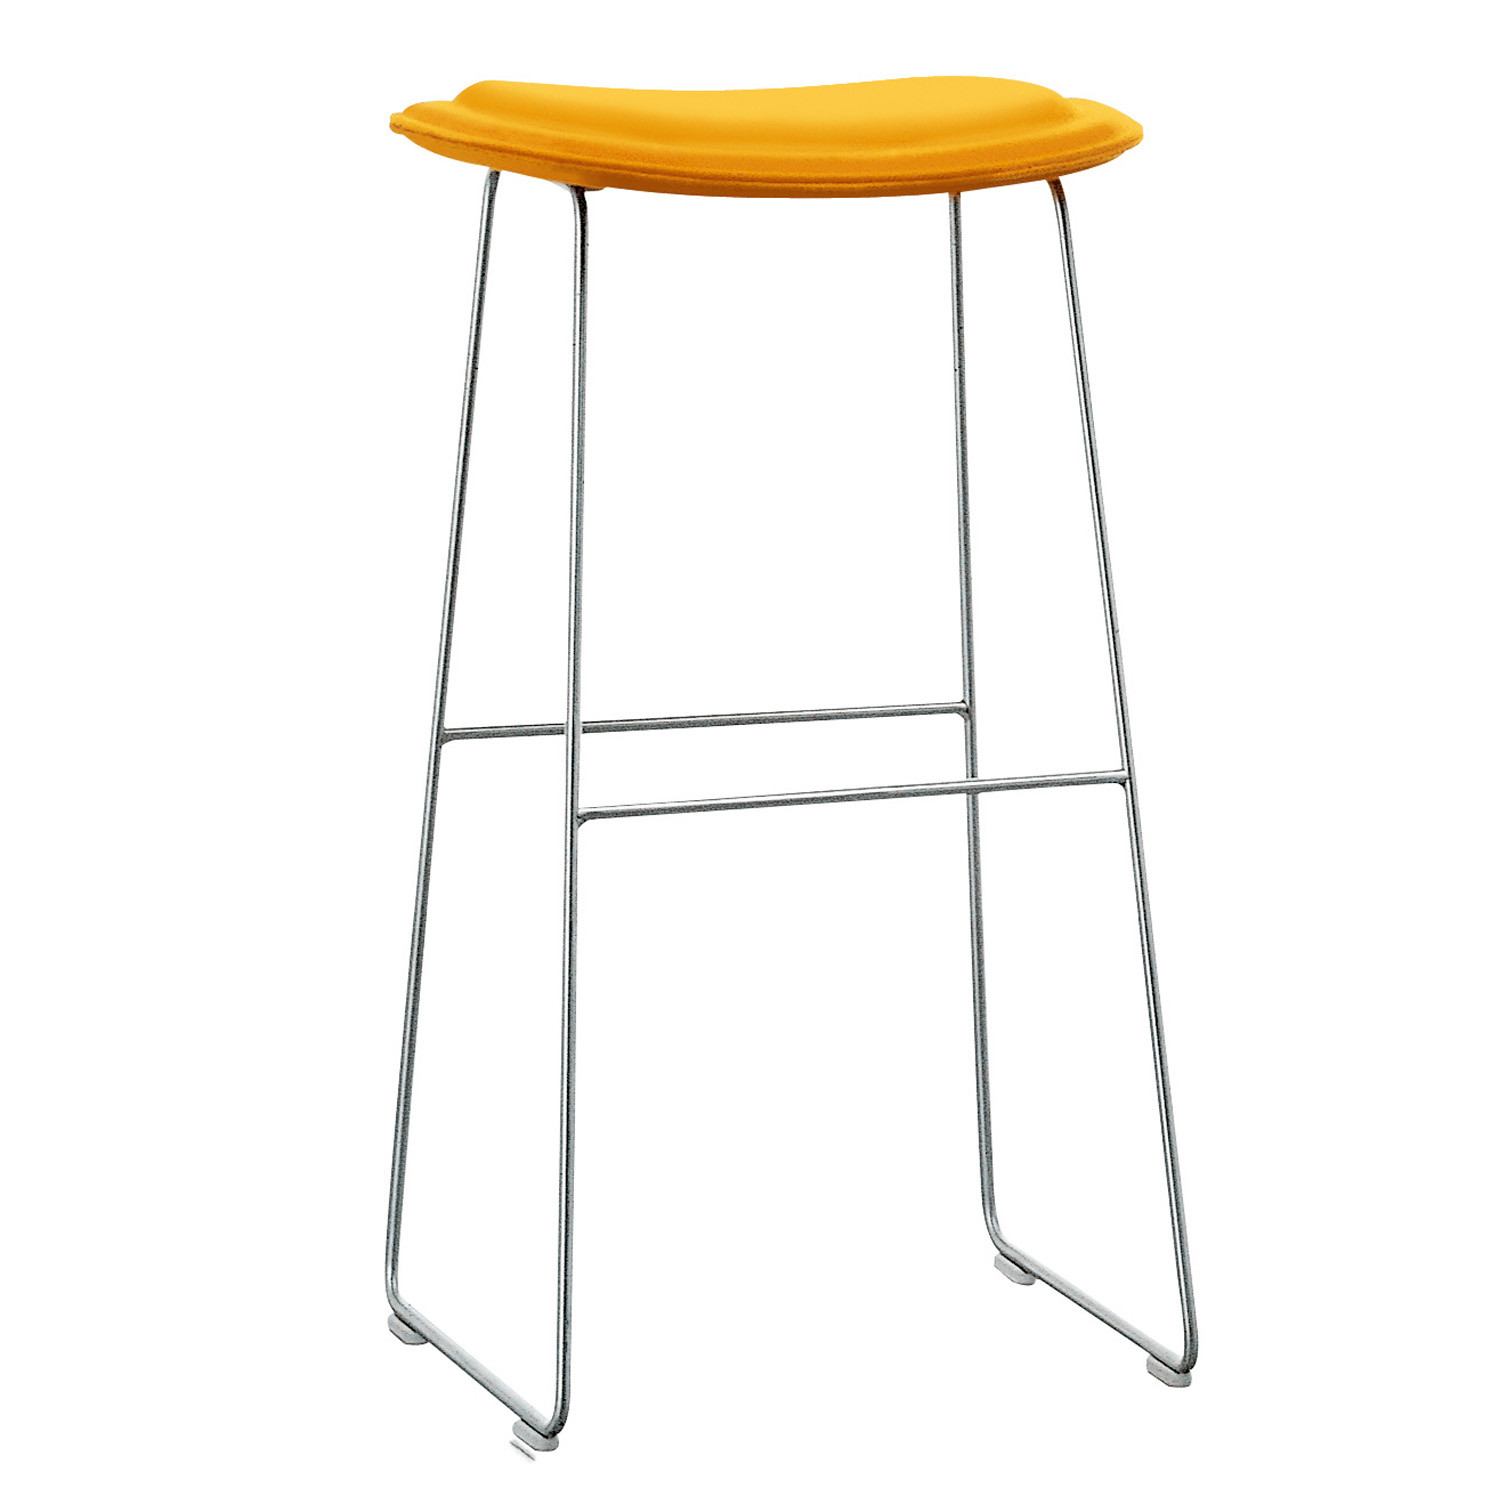 Hi Pad High Stool by Cappellini